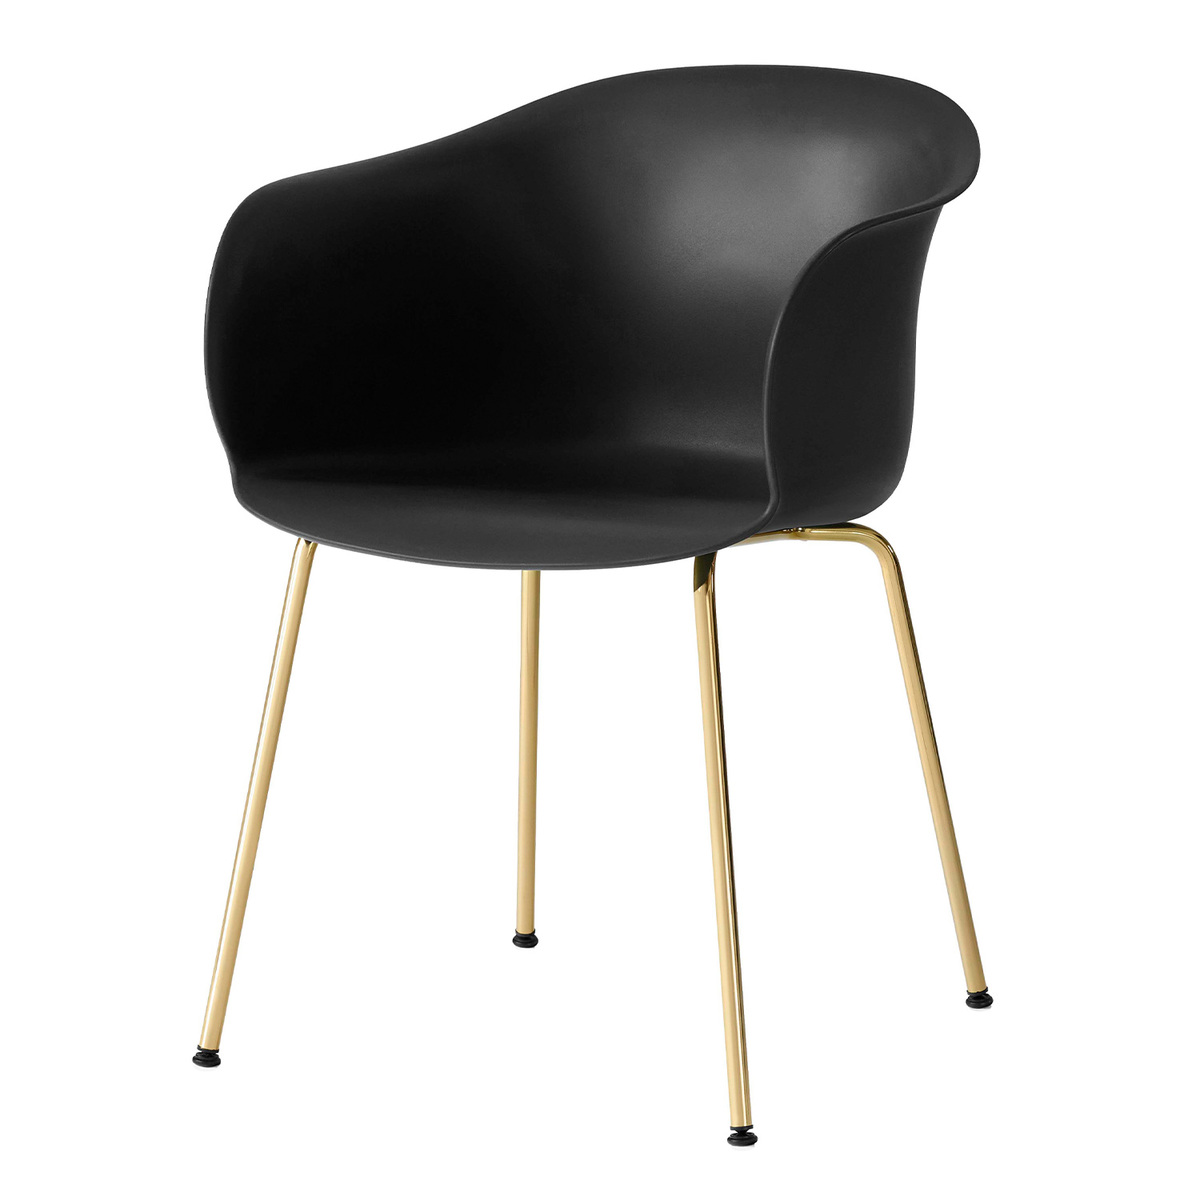 &Tradition Elefy JH28 chair, black - brass from &Tradition